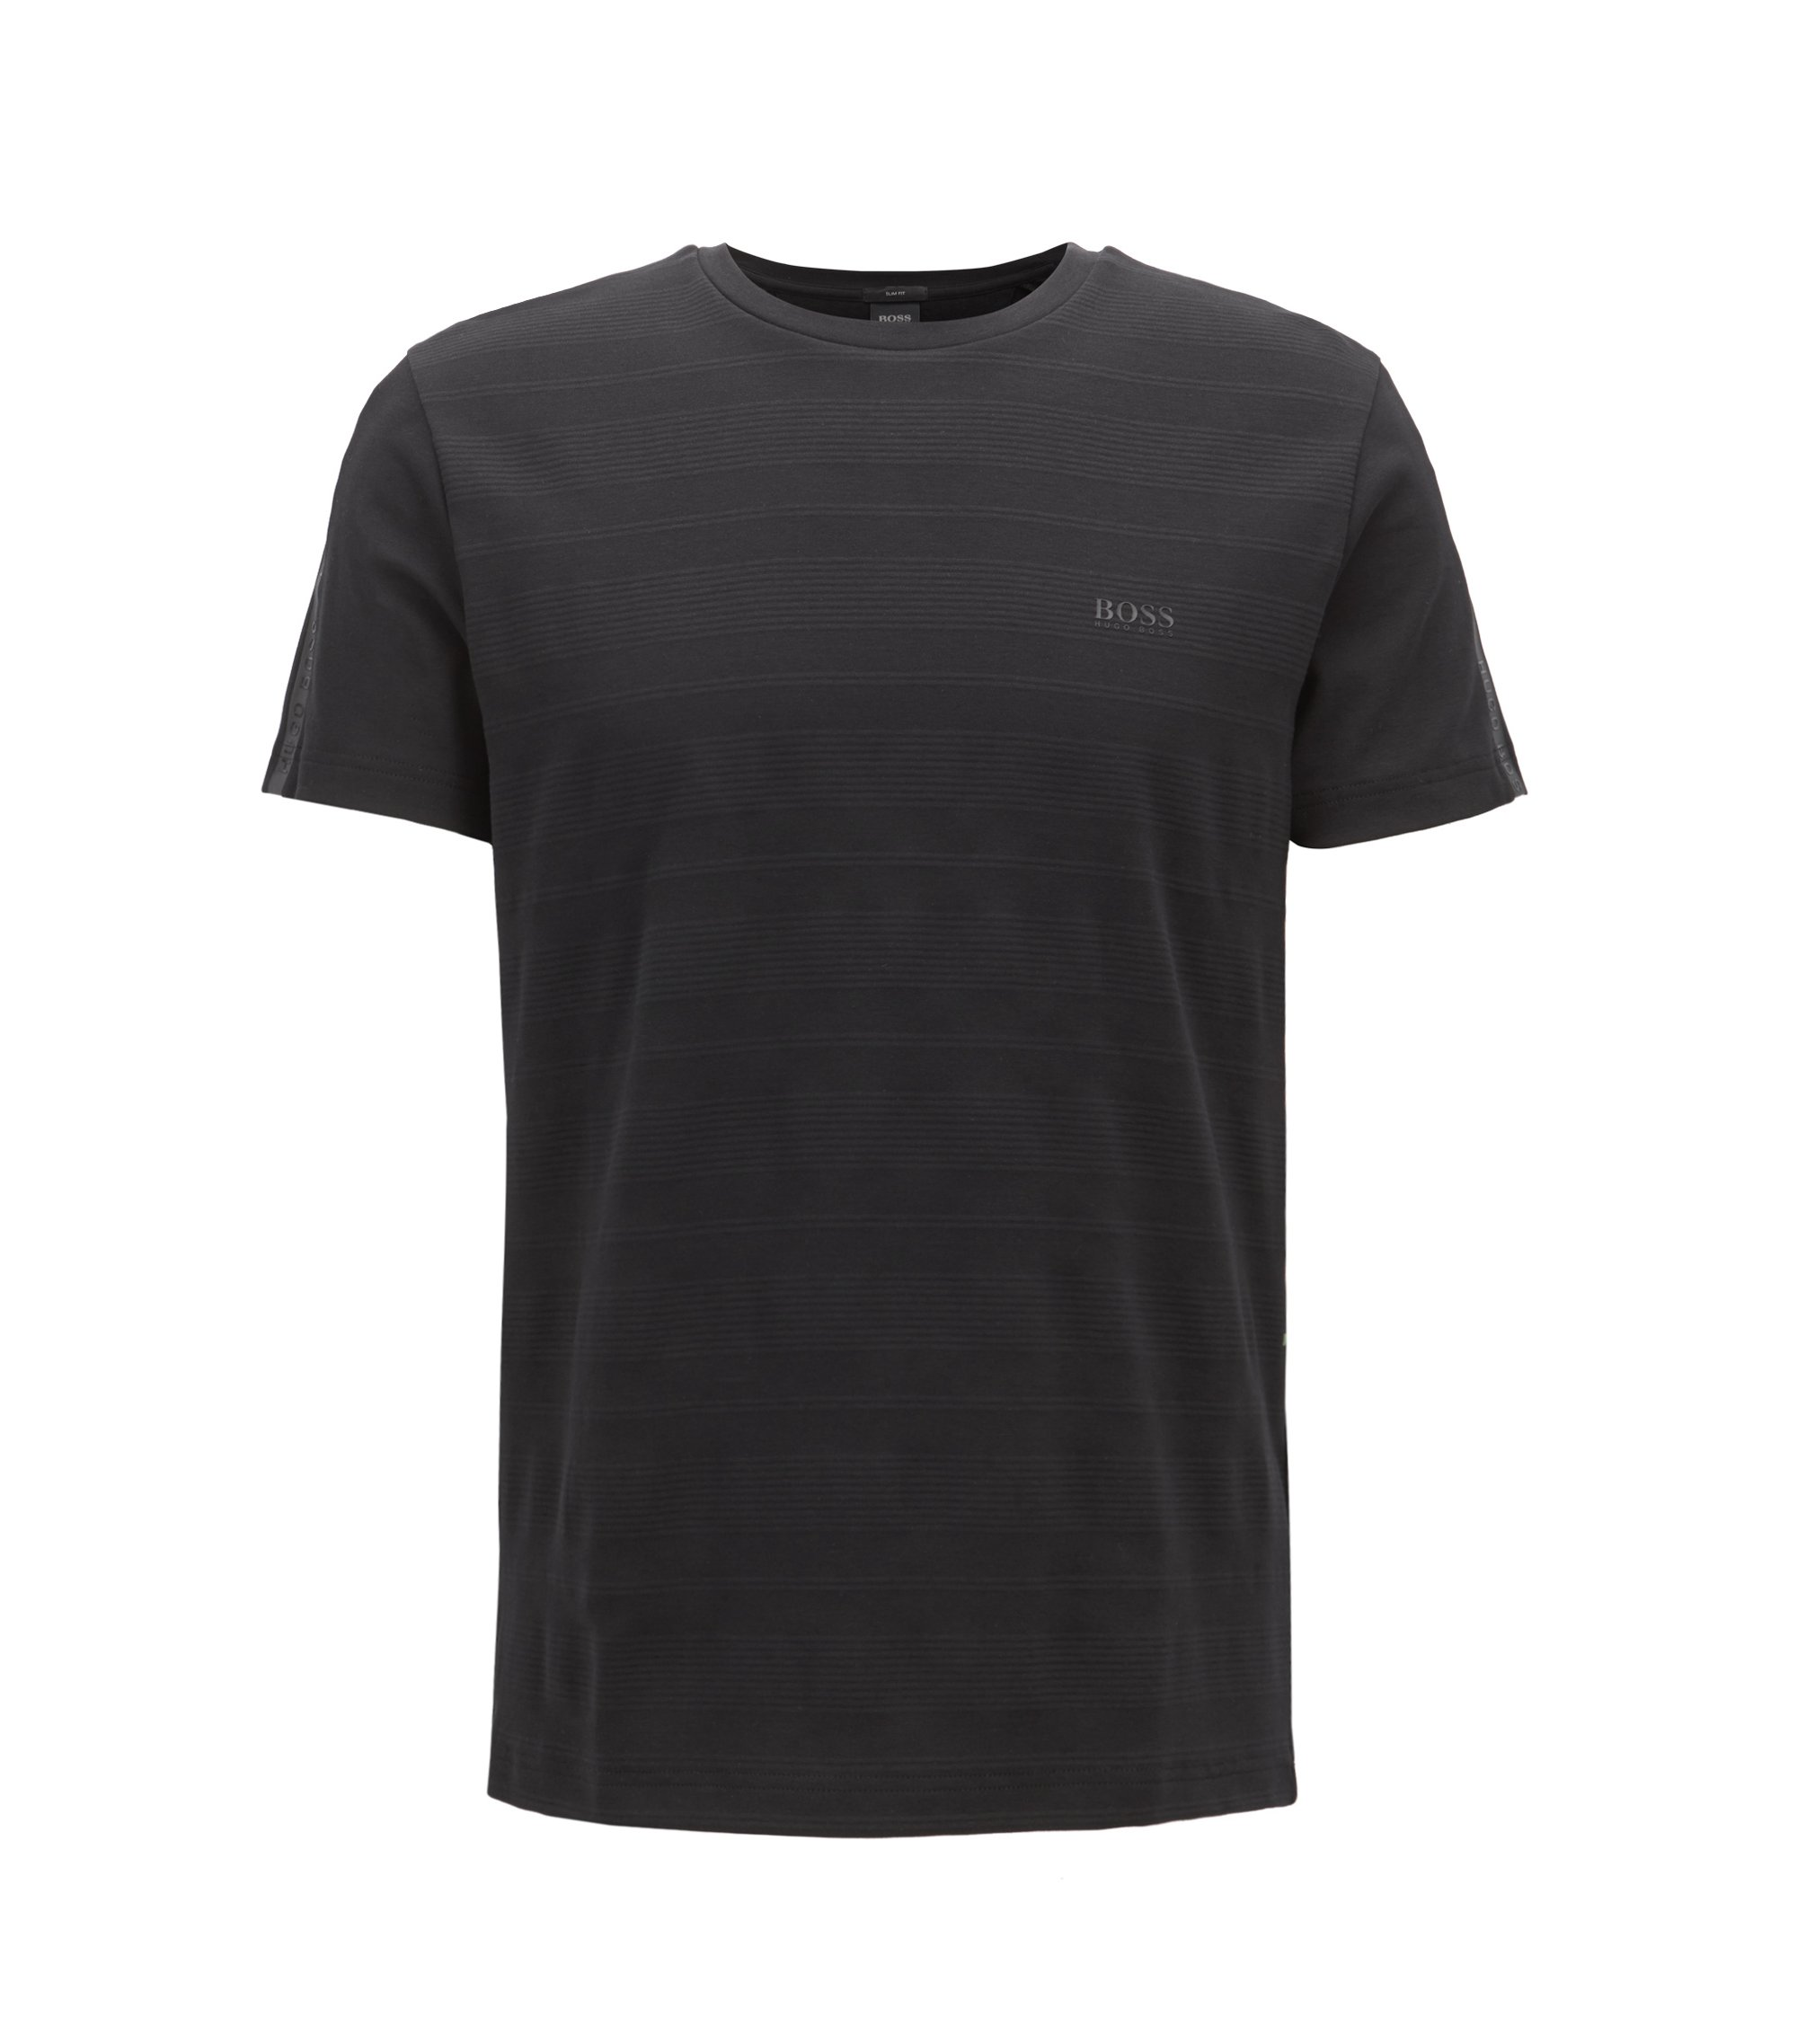 Slim-fit T-shirt in cotton with logo-tape sleeves, Black